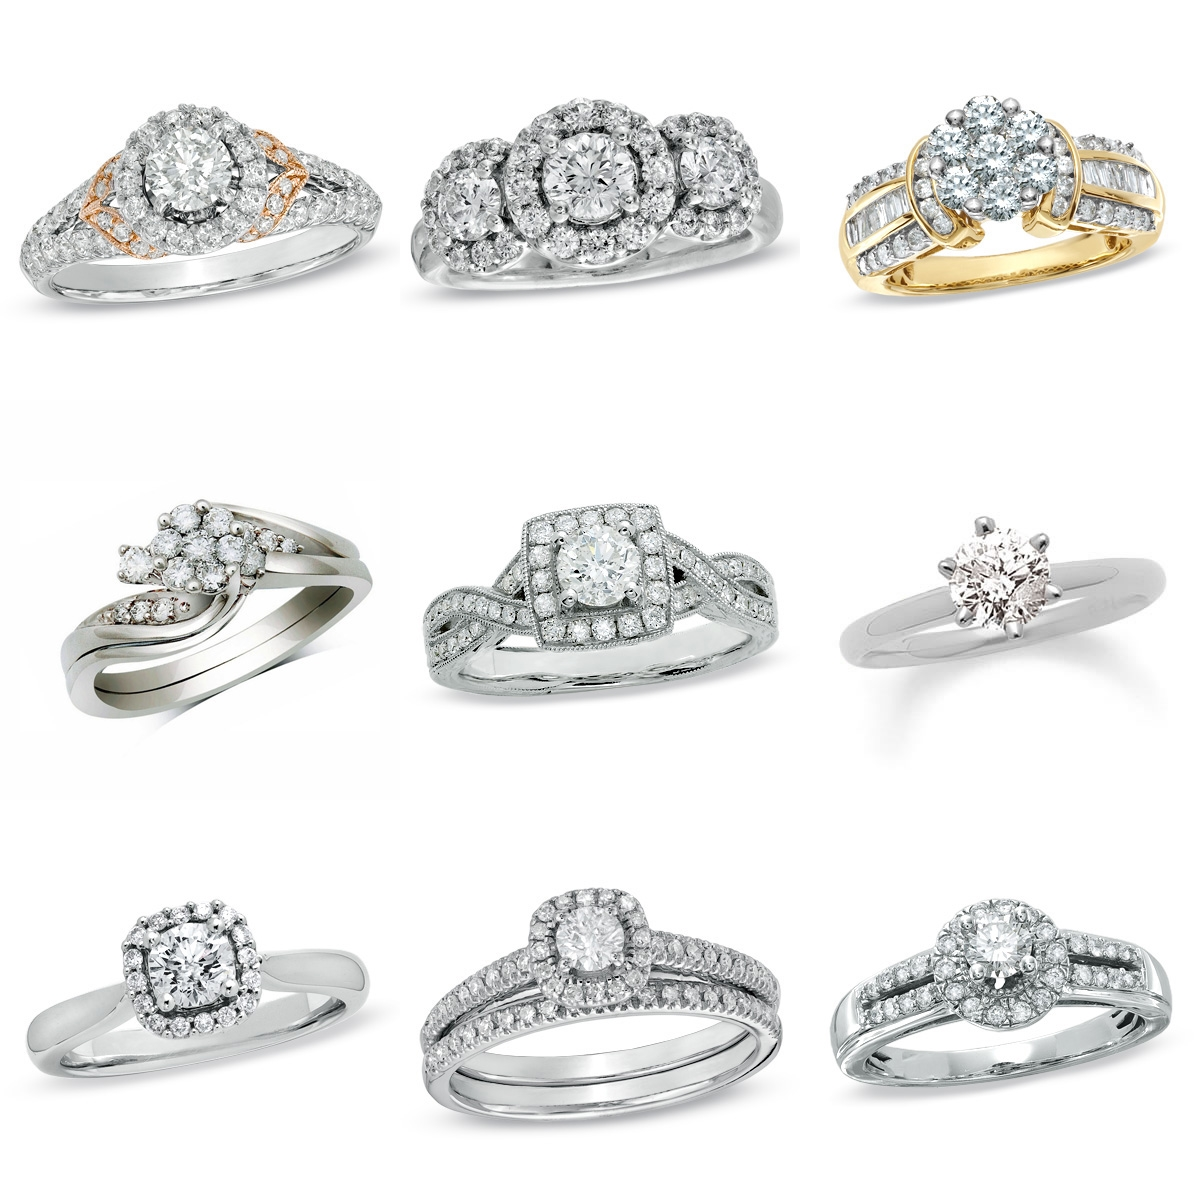 Couple Rings Gold Tanishq Shopping Guide We Are Number One Where To Buy Cute Clothes